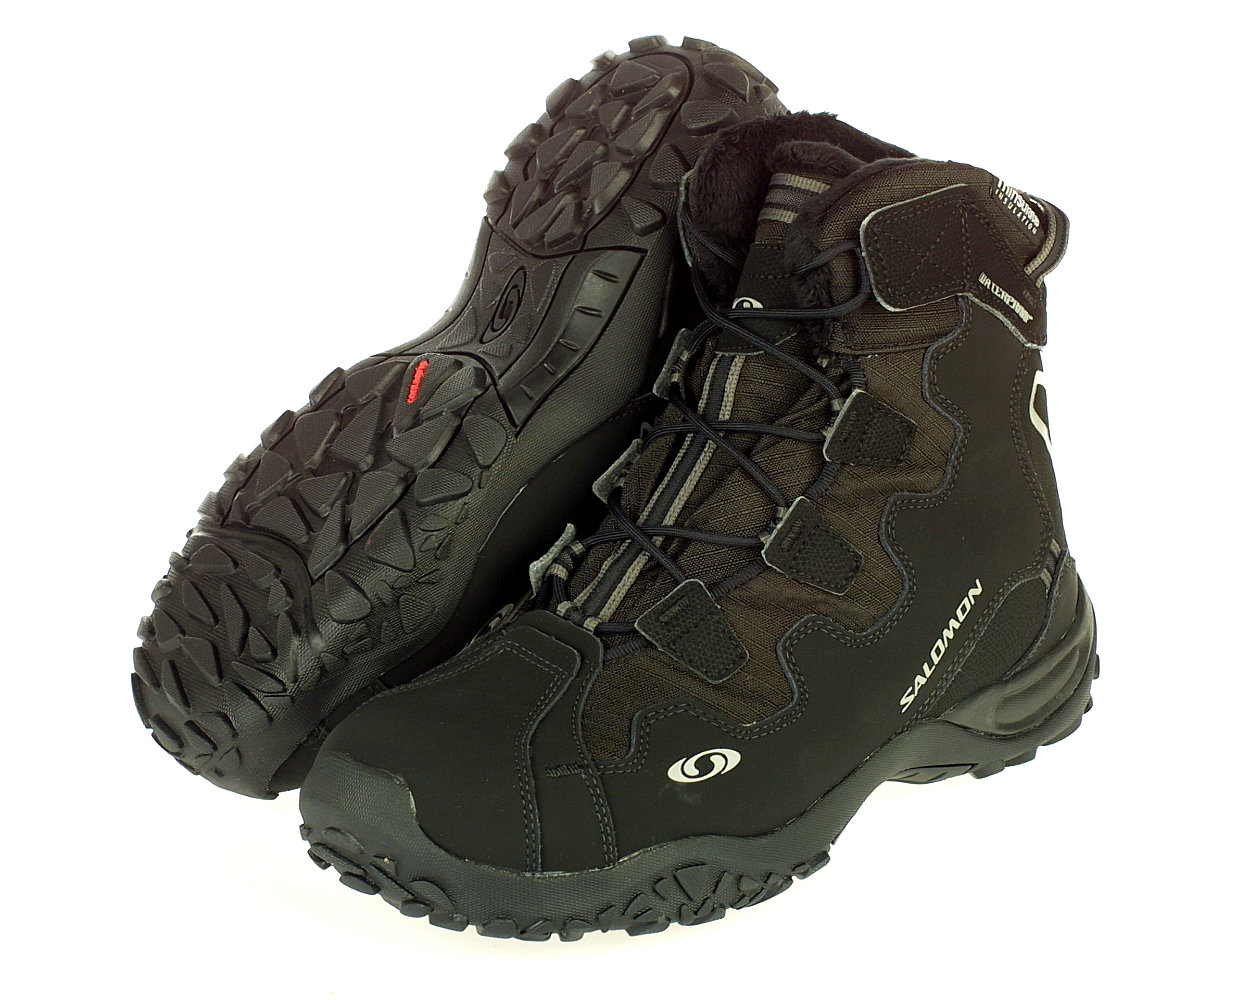 Details about Salomon Snowtrip Snow Trip Waterproof Fake Fur Thinsulate Lined Boots Mens 10